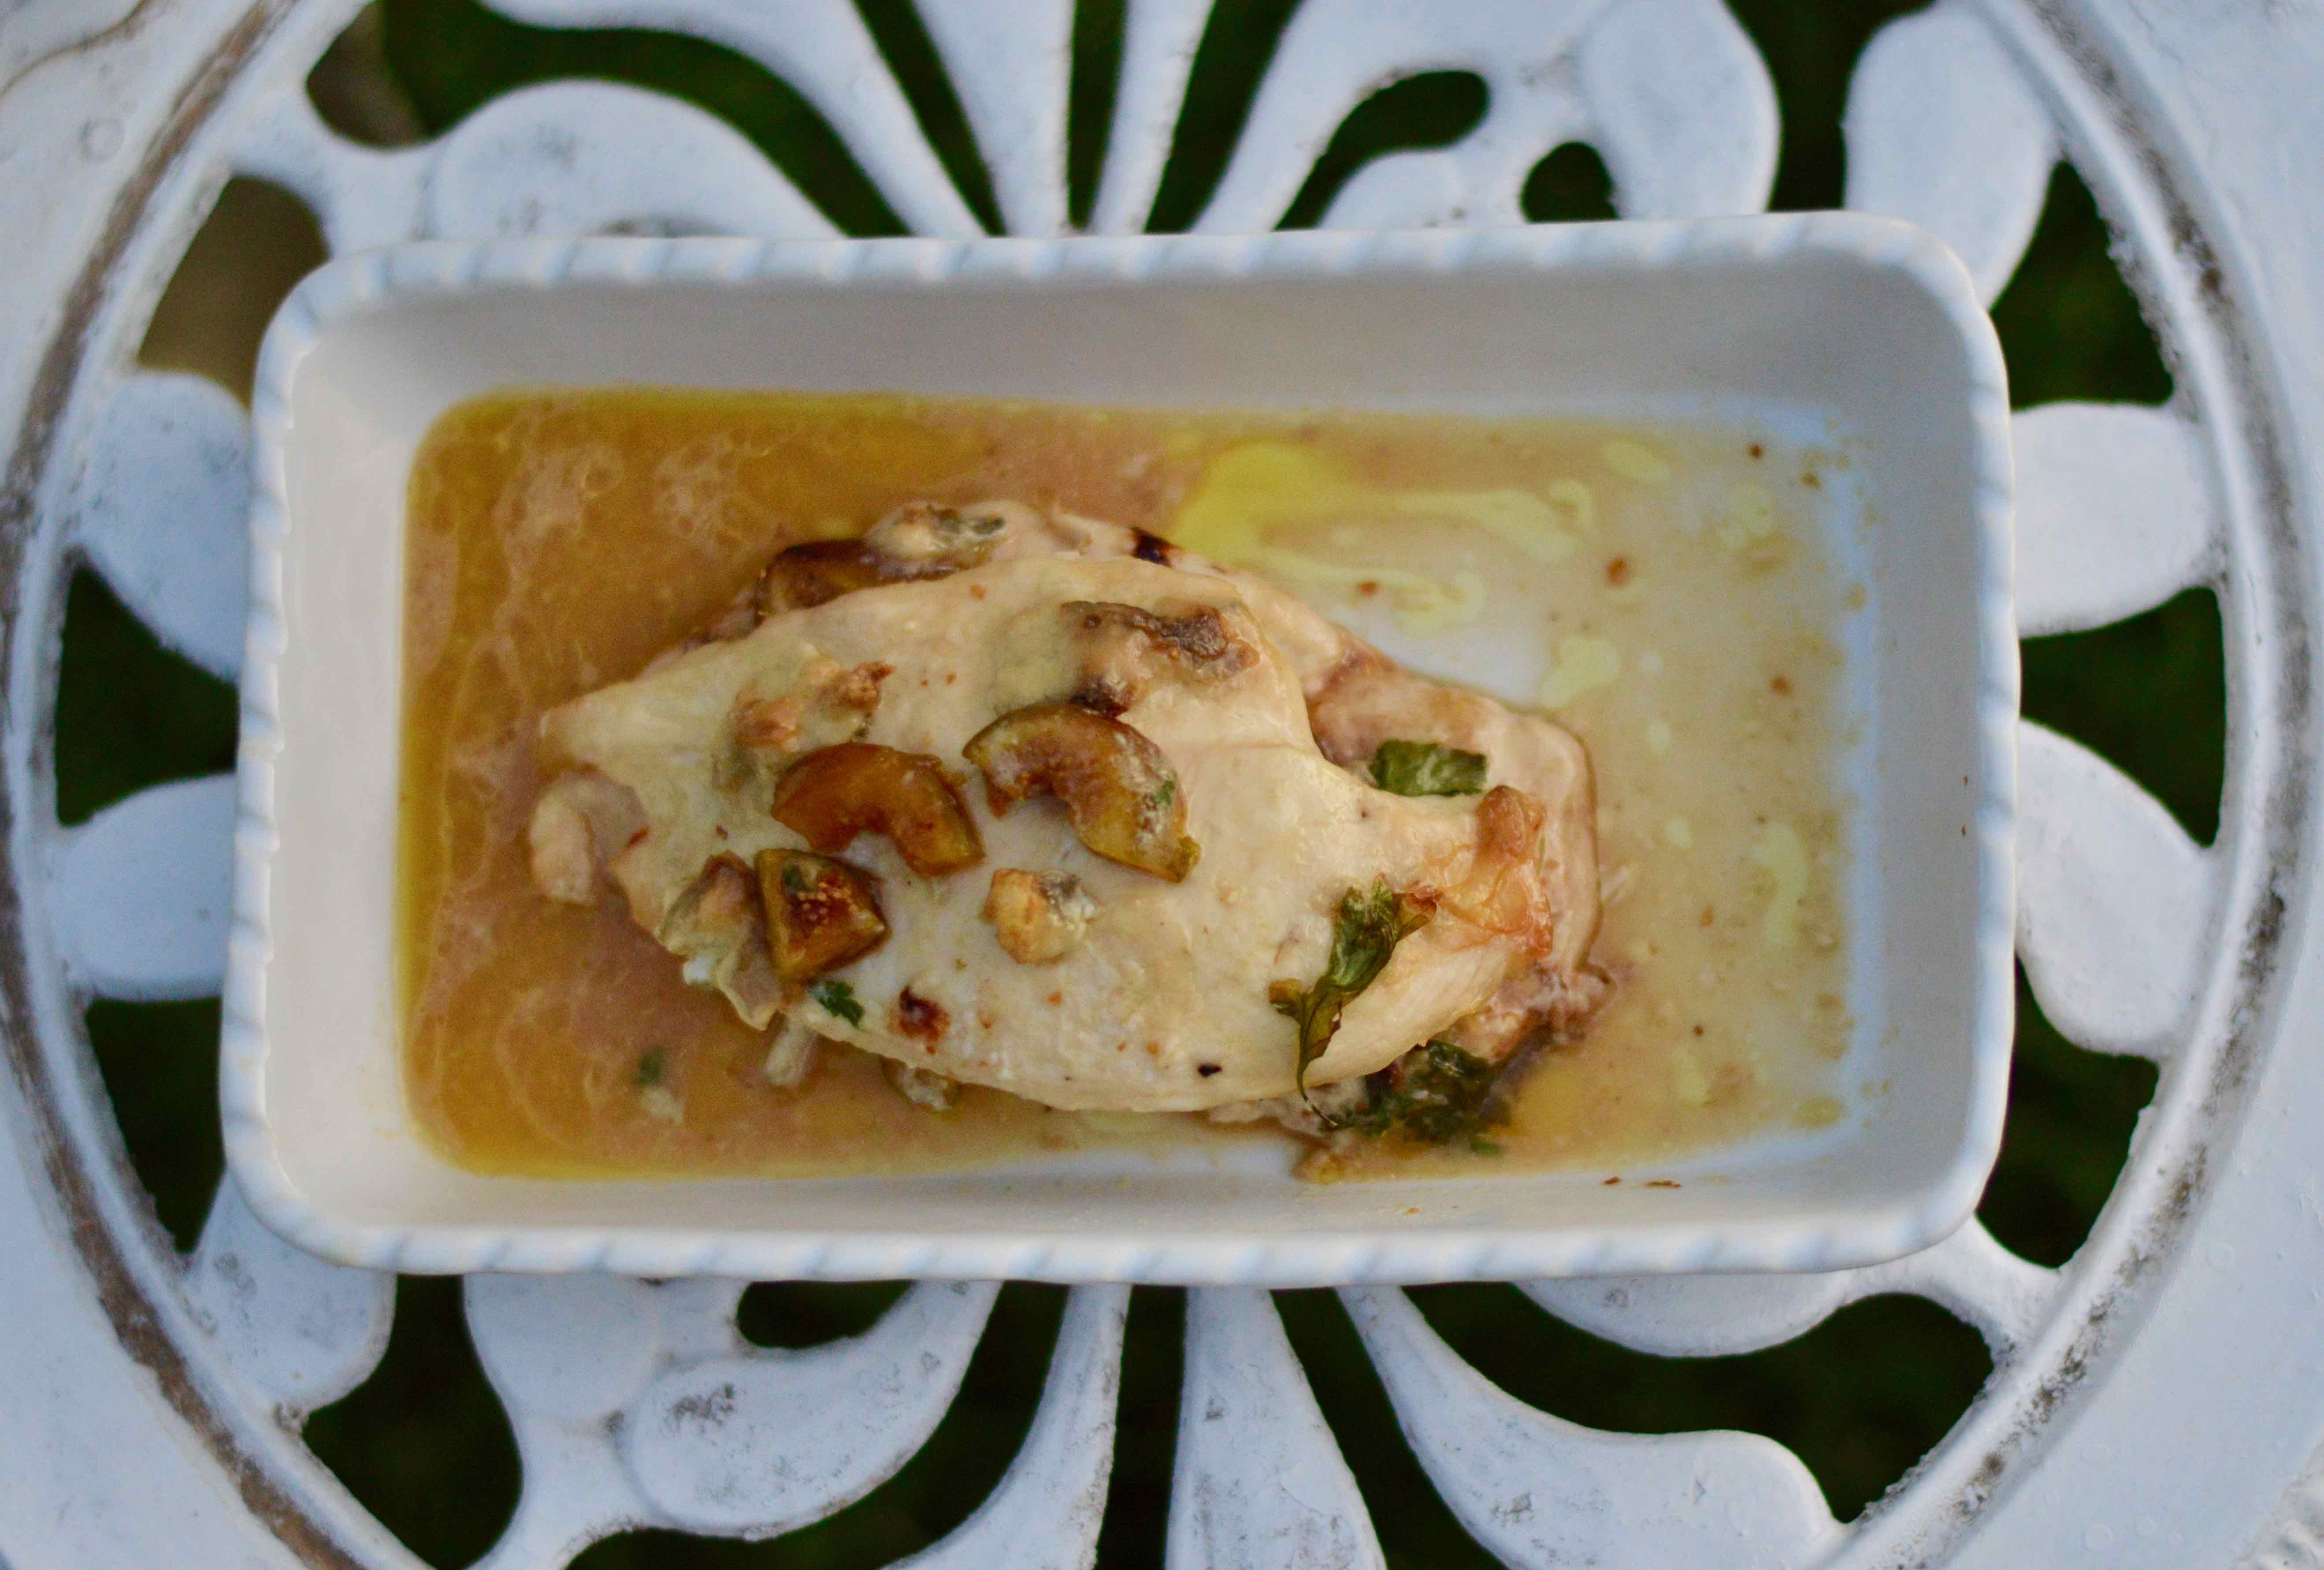 Finished Chicken and Fig meal